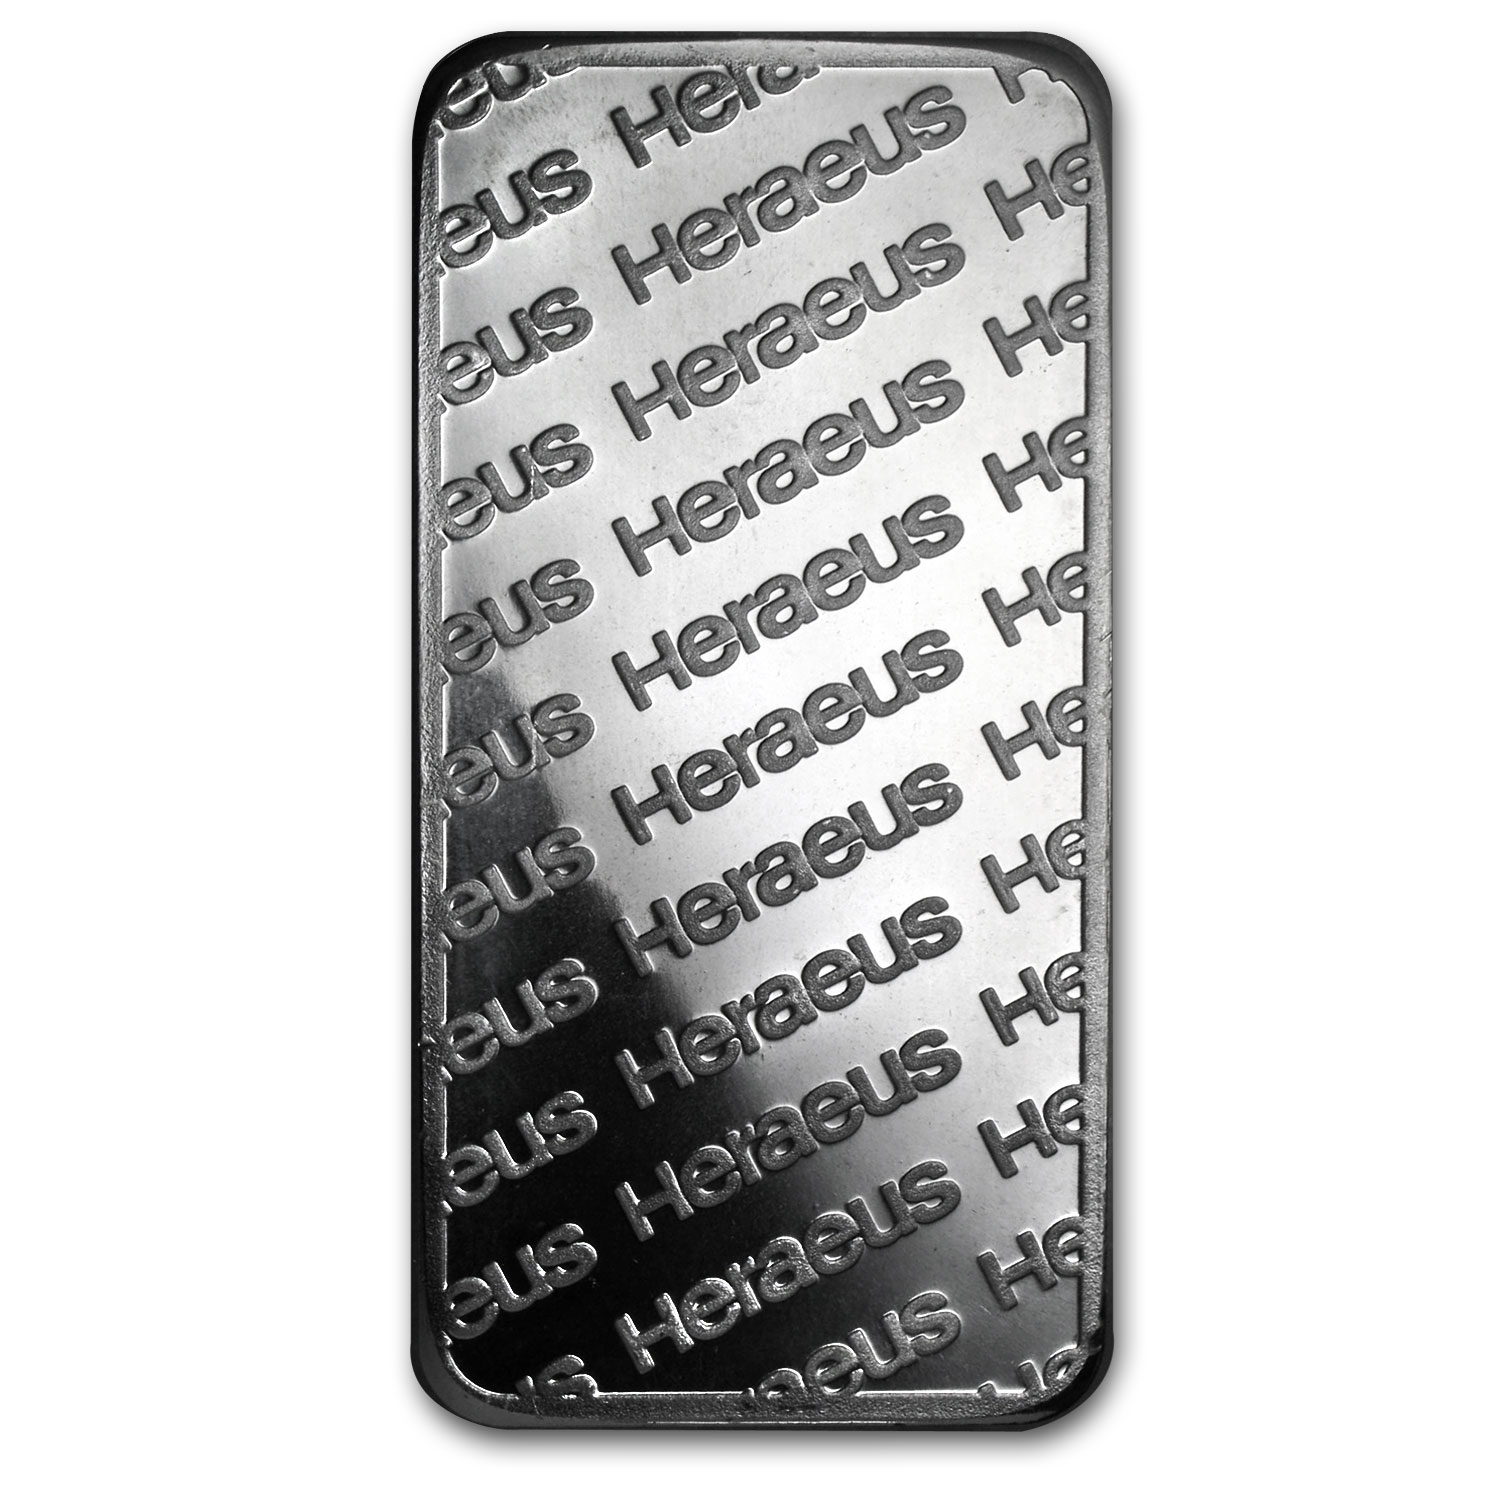 10 oz Silver Bars - Heraeus (Pressed)